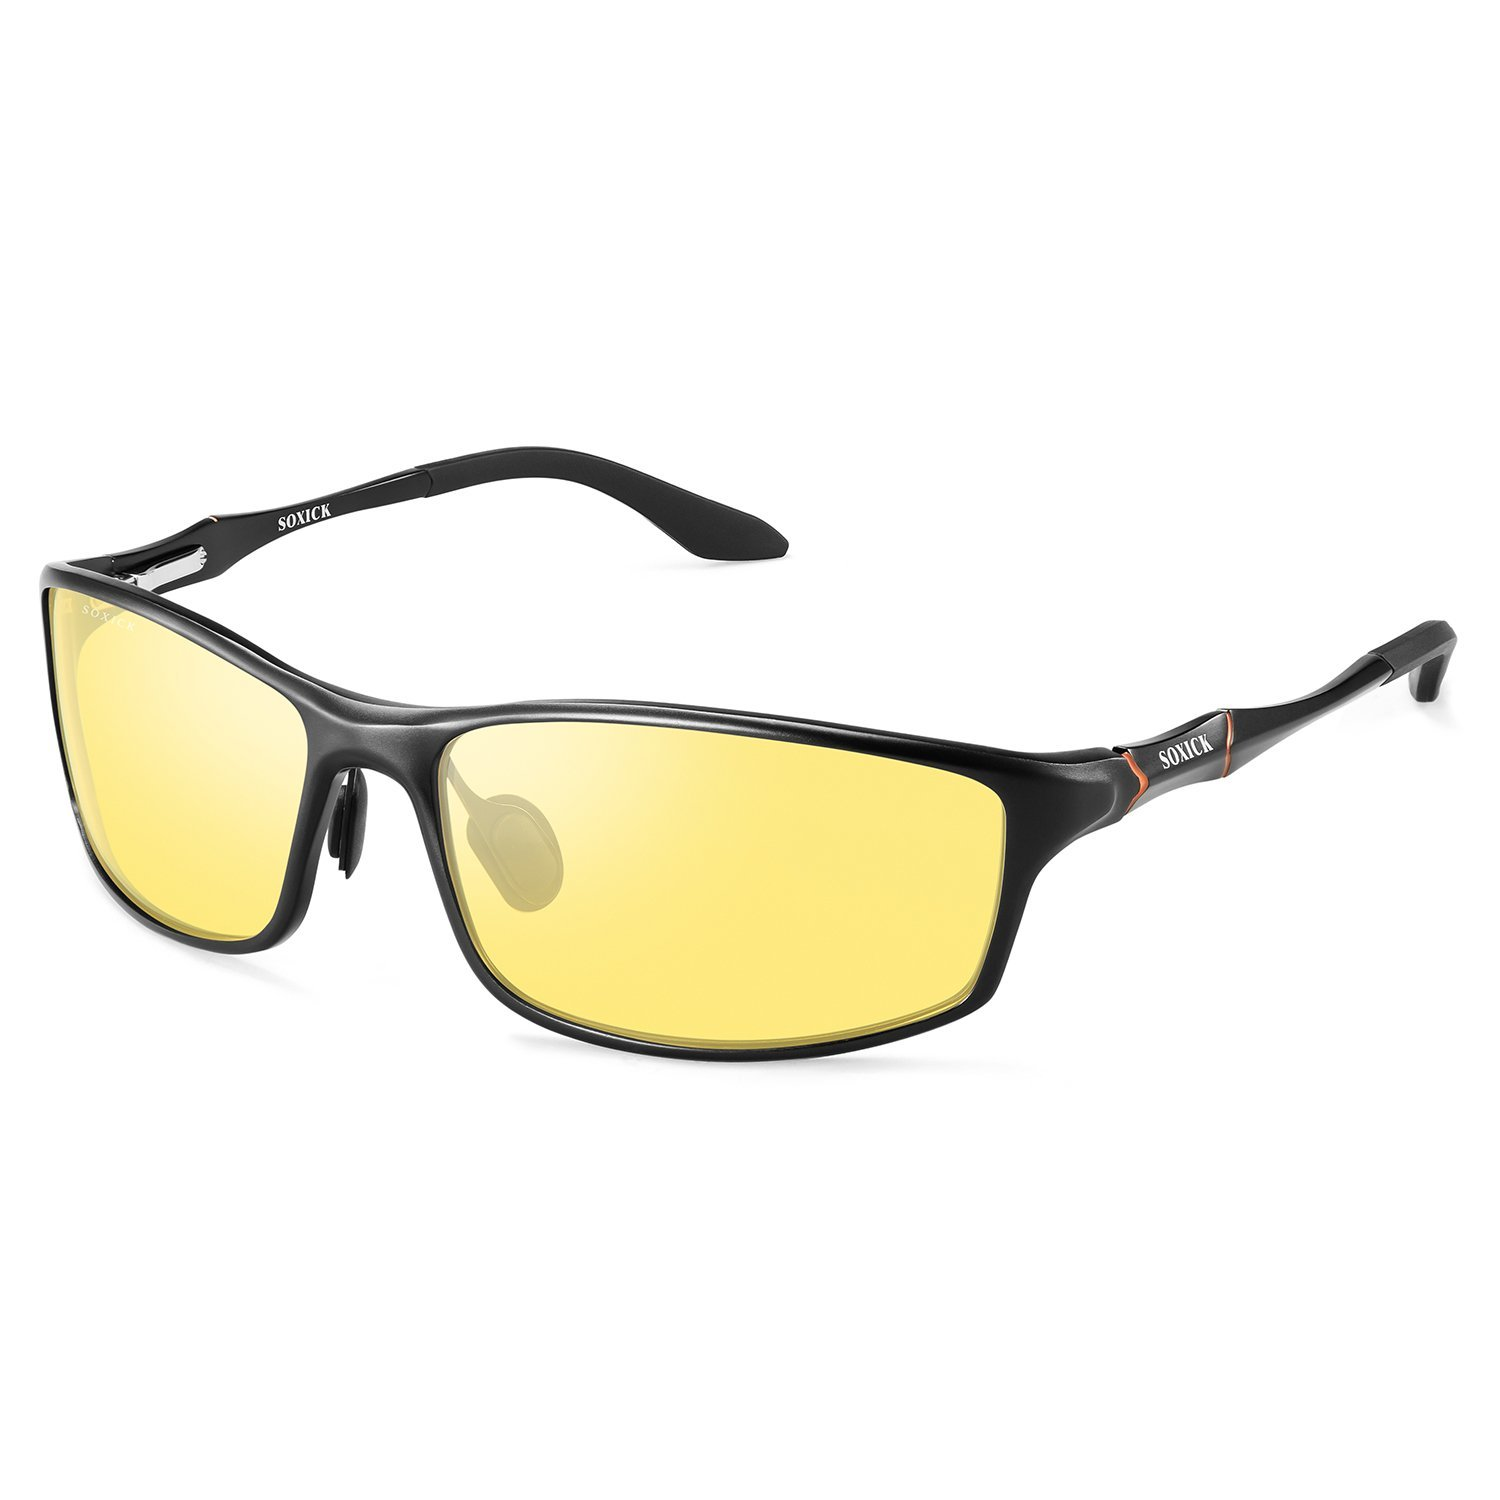 94fa741726fd Get Quotations · HD Night Driving Glasses Polarized Anti-glare Safety Night  Vision Glasses for Driving